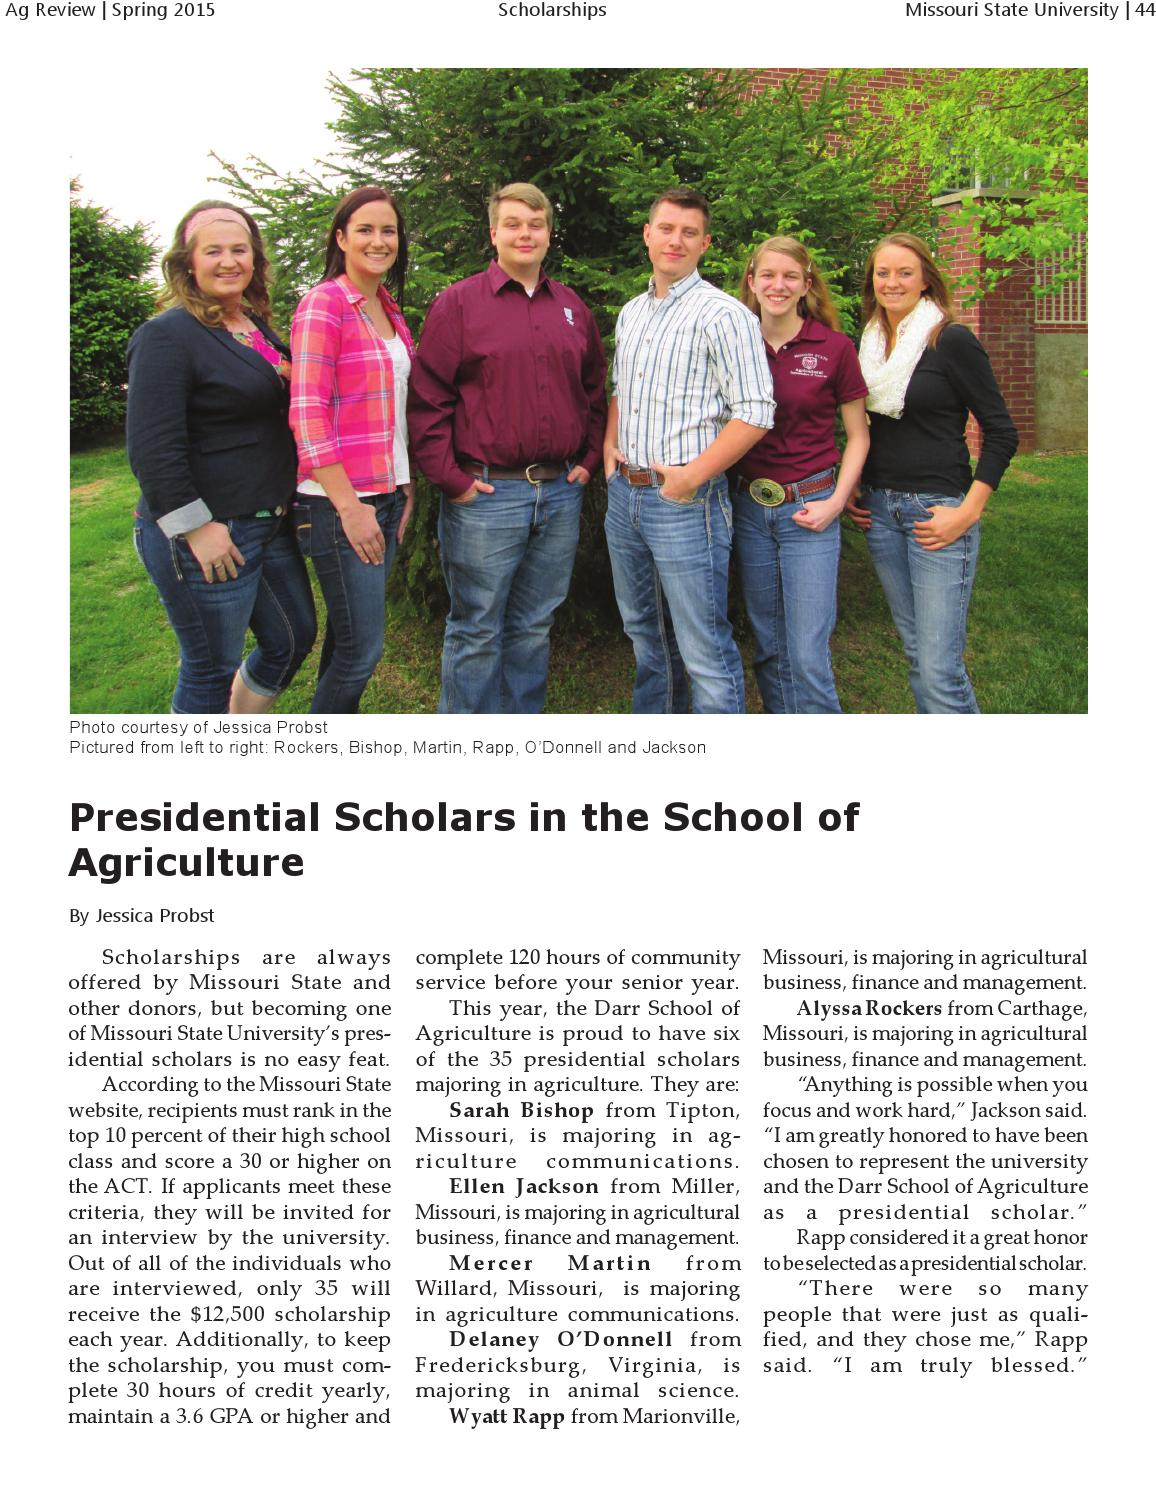 Fall 2014 Ag Review, Volume 33 by Missouri State University